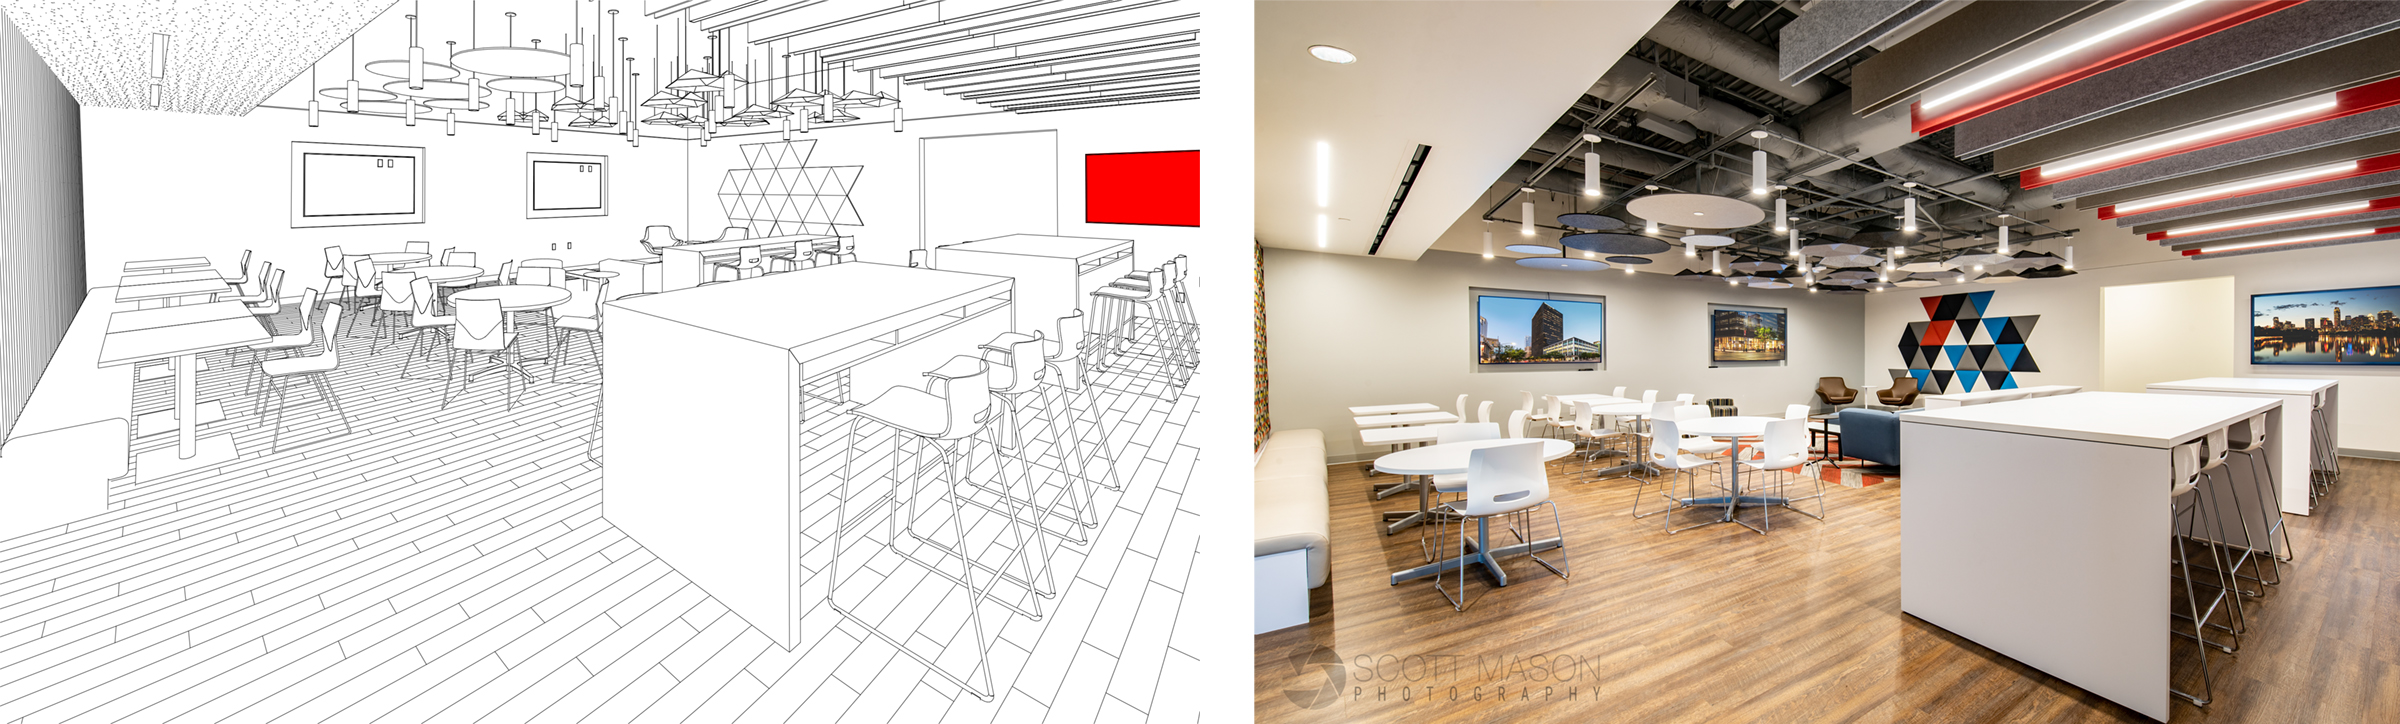 side-by-side of an architectural rendering and interior photo of an office